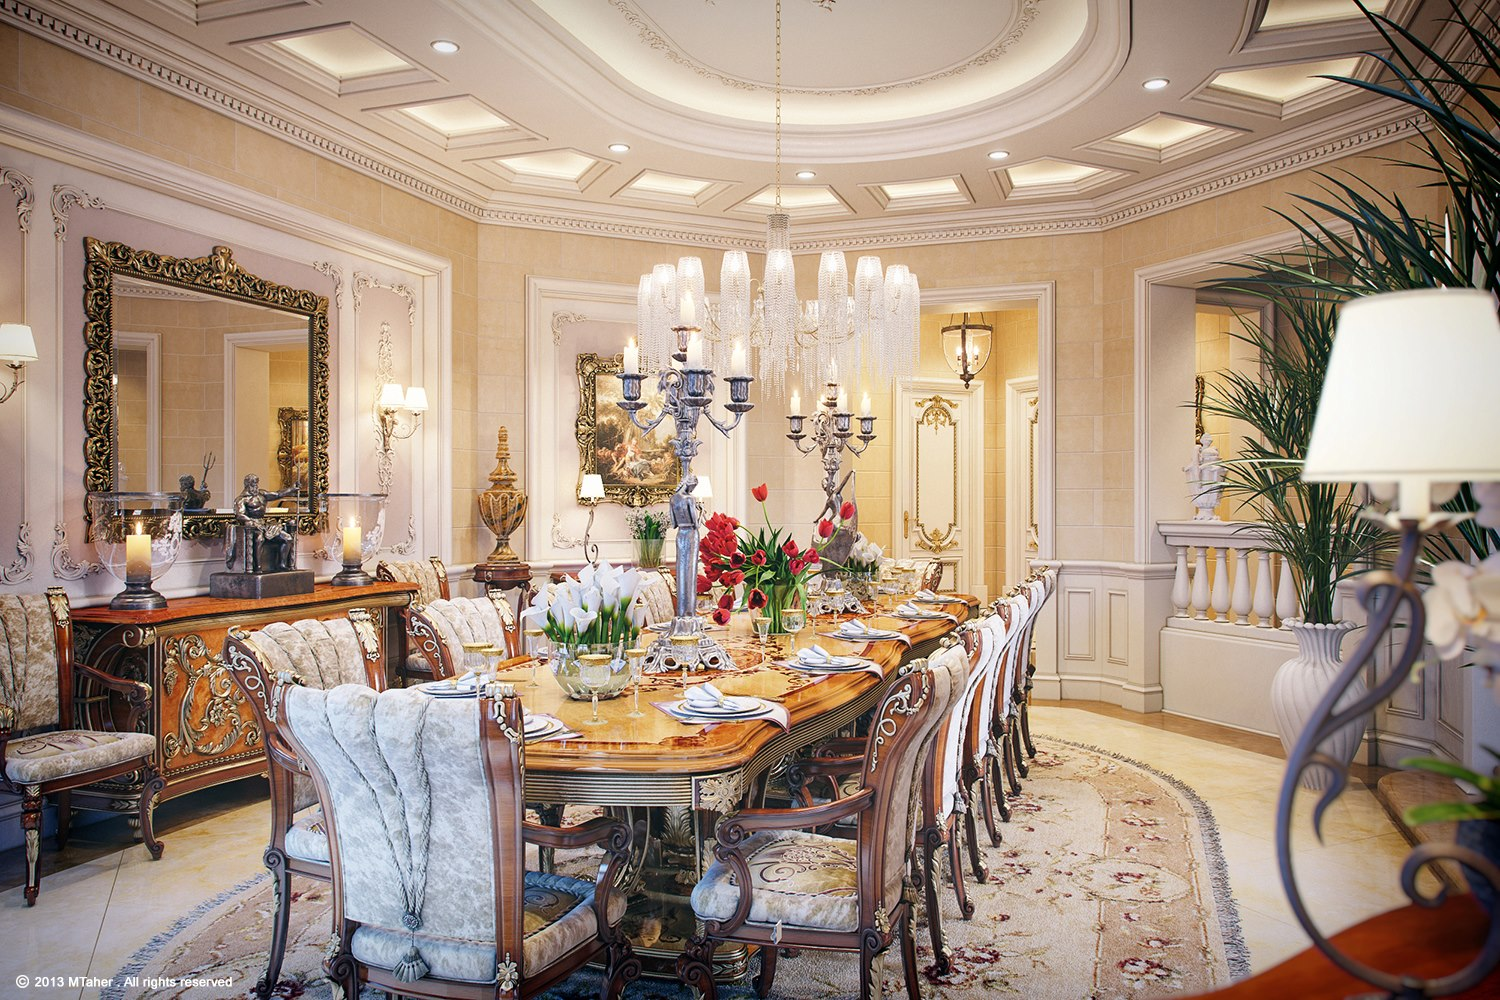 Luxury villa dining room 3 interior design ideas Interior design ideas luxury homes